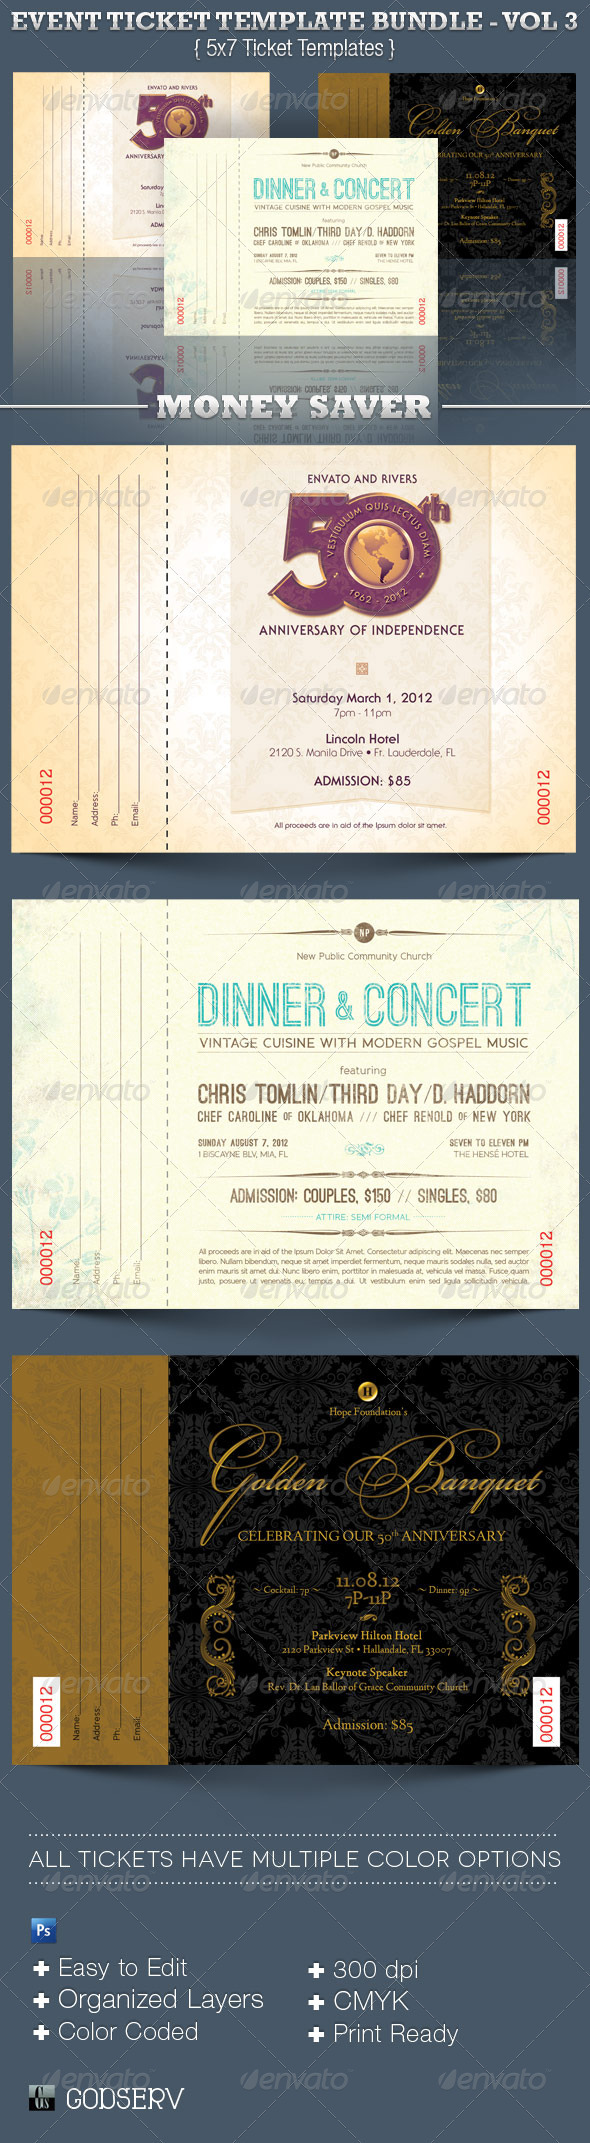 Event Ticket Template Bundle Volume 3 - Miscellaneous Print Templates